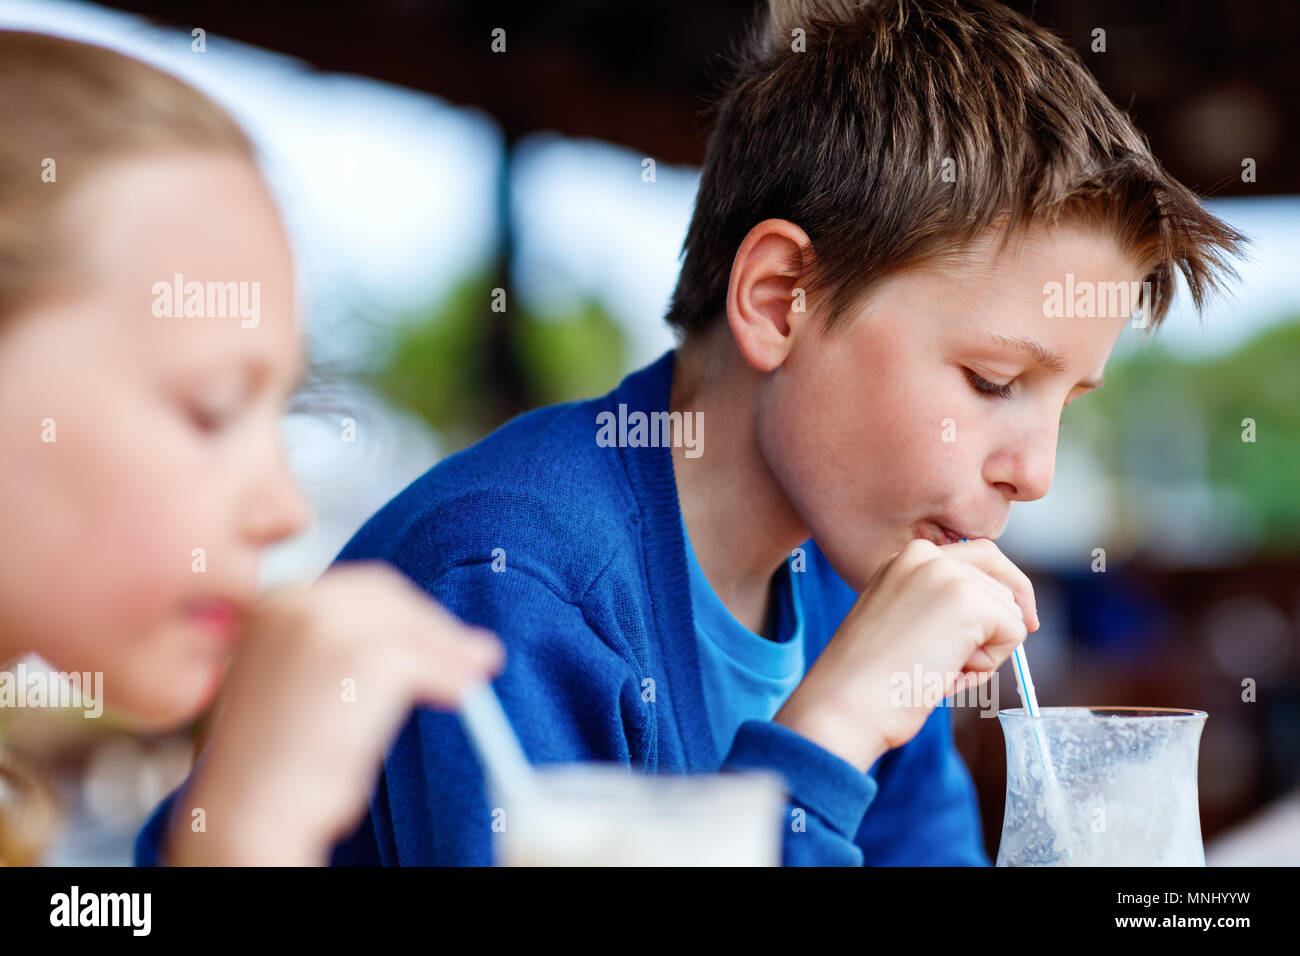 Kids brother and sister drinking milkshakes in outdoor cafe - Stock Image